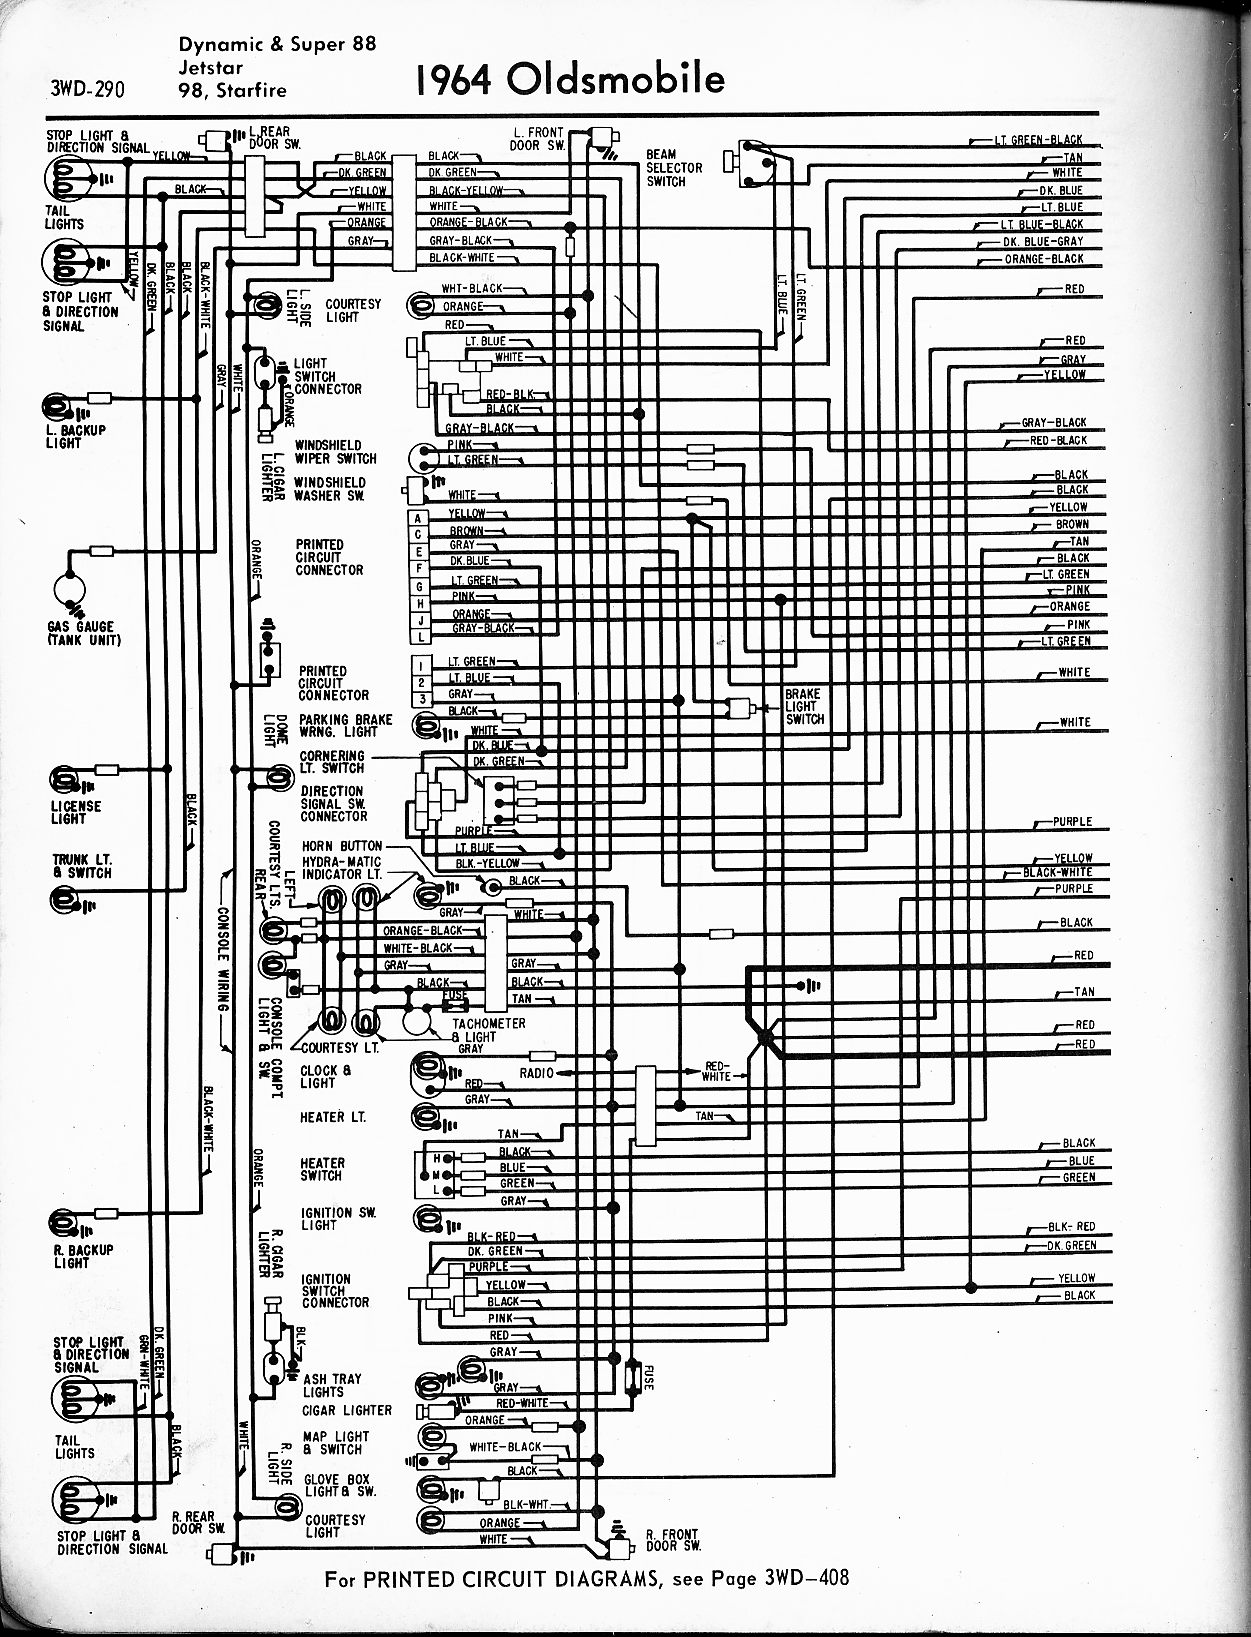 oldsmobile wiring diagrams the old car manual project rh  oldcarmanualproject com 1998 Oldsmobile Cutlass Engine Diagram 2000 Oldsmobile  Silhouette Engine ...